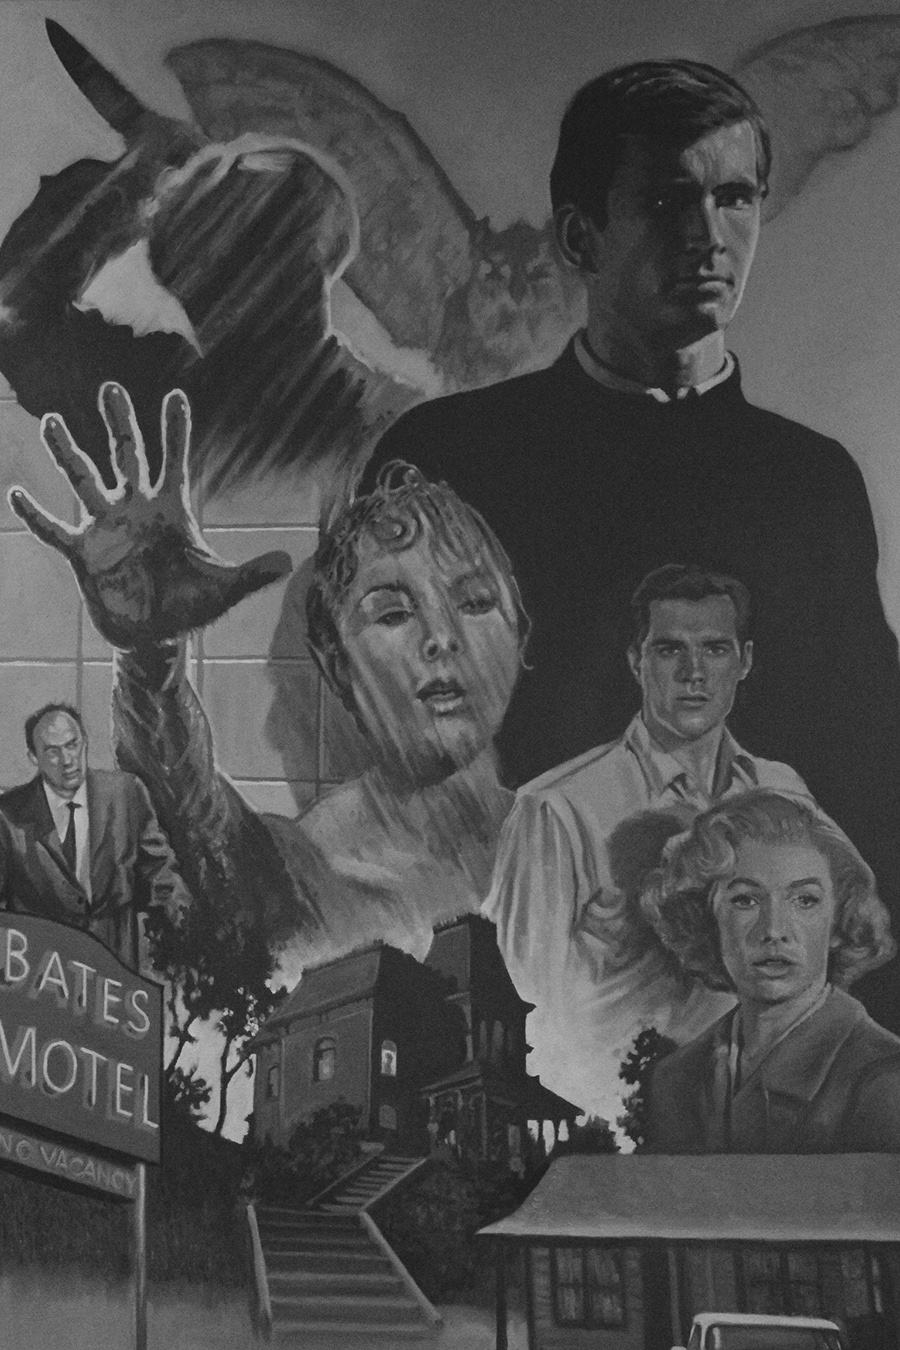 Inside+the+movie+theatre+are+many+different+works+of+art+dedicated+to+films%2C+actors+and+directors.+In+this+painting%2C+homage+is+paid+to+the+classic+horror+film+Psycho.